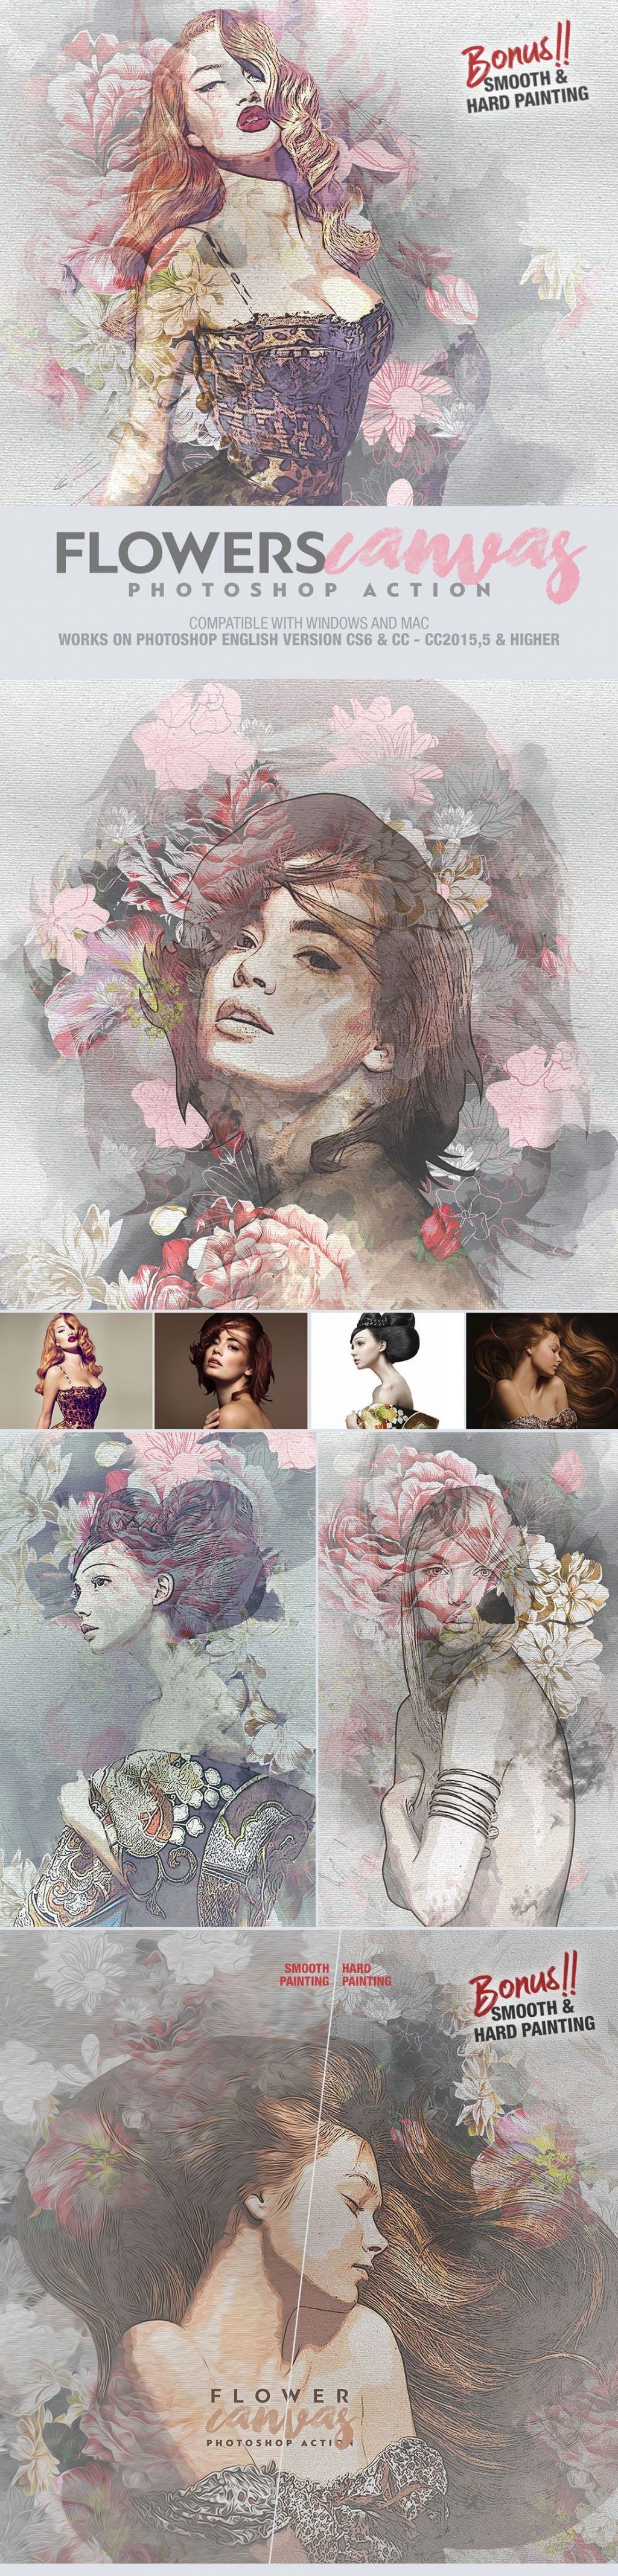 Photoshop Actions & Templates: Artistic Photo FX Bundle - flower canvas photoshop action design by amorjesu 2